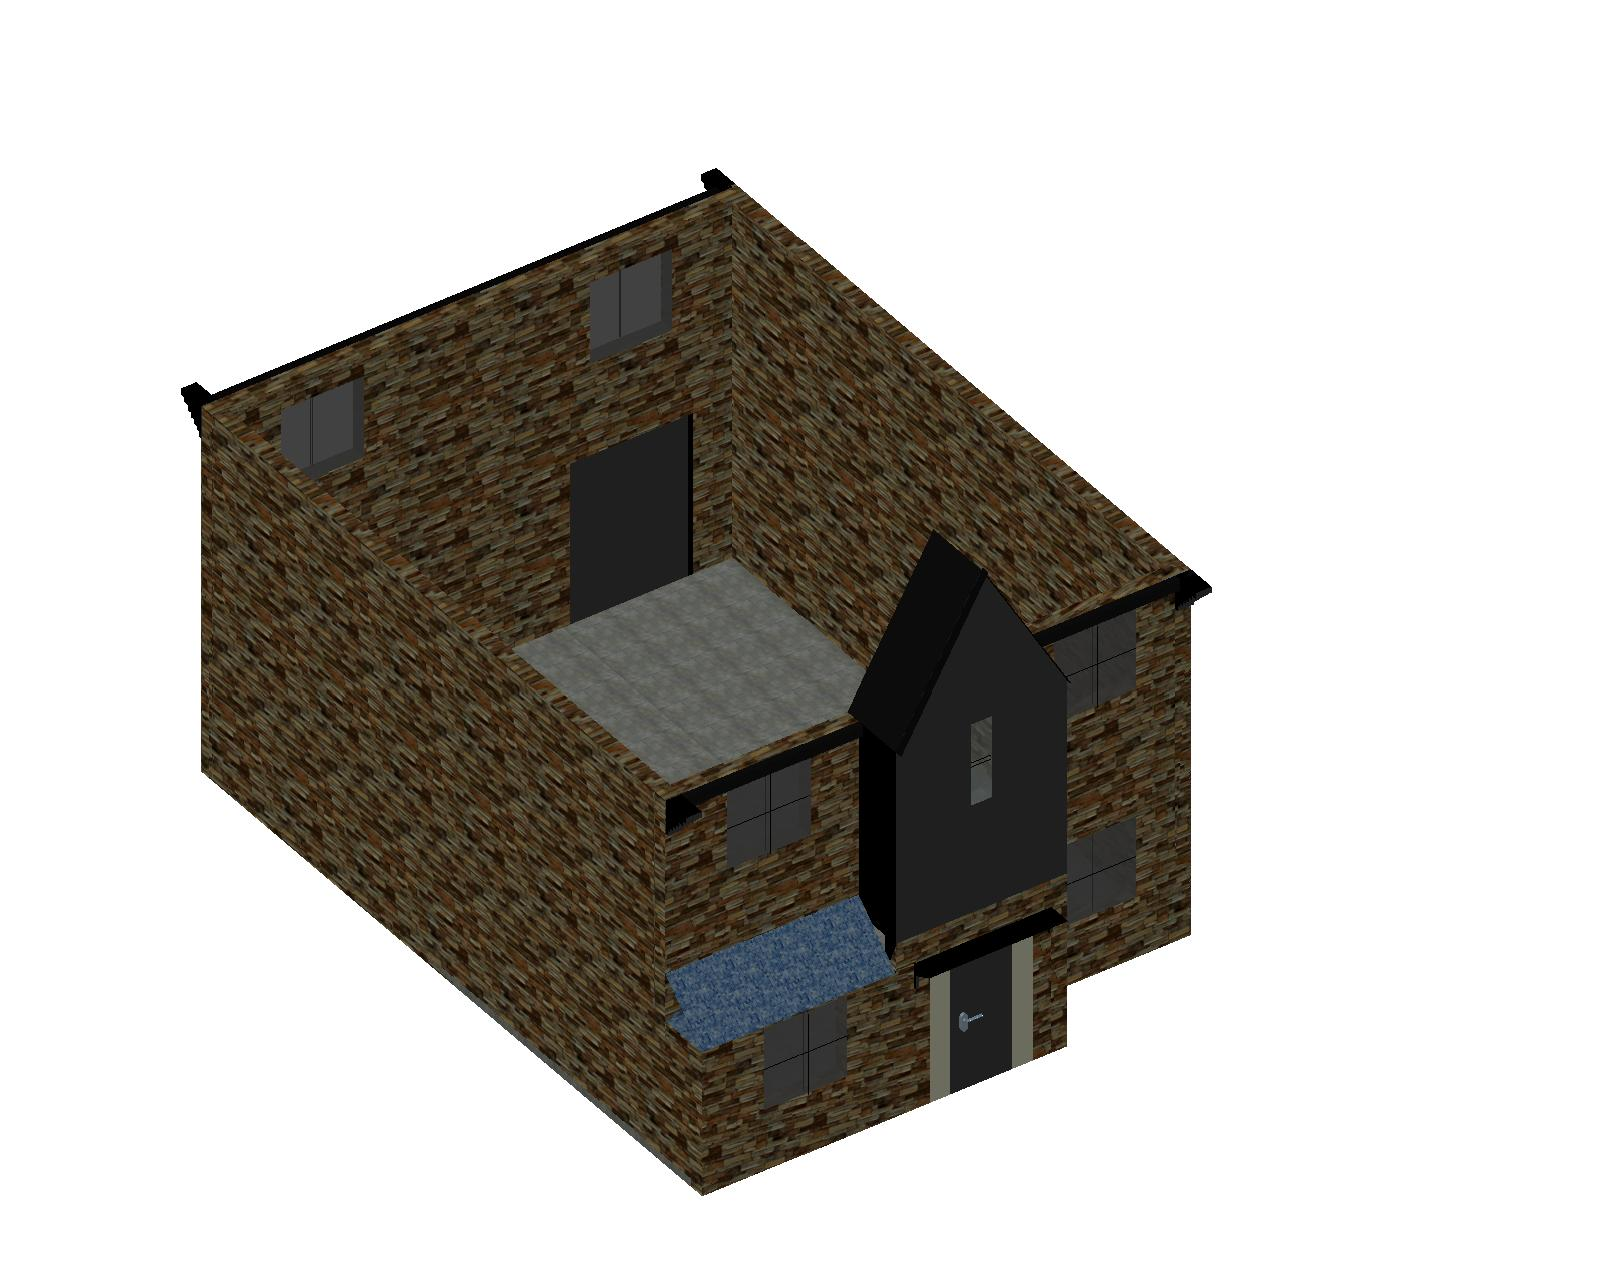 I will do CAD 3d modelling or rendering of your house